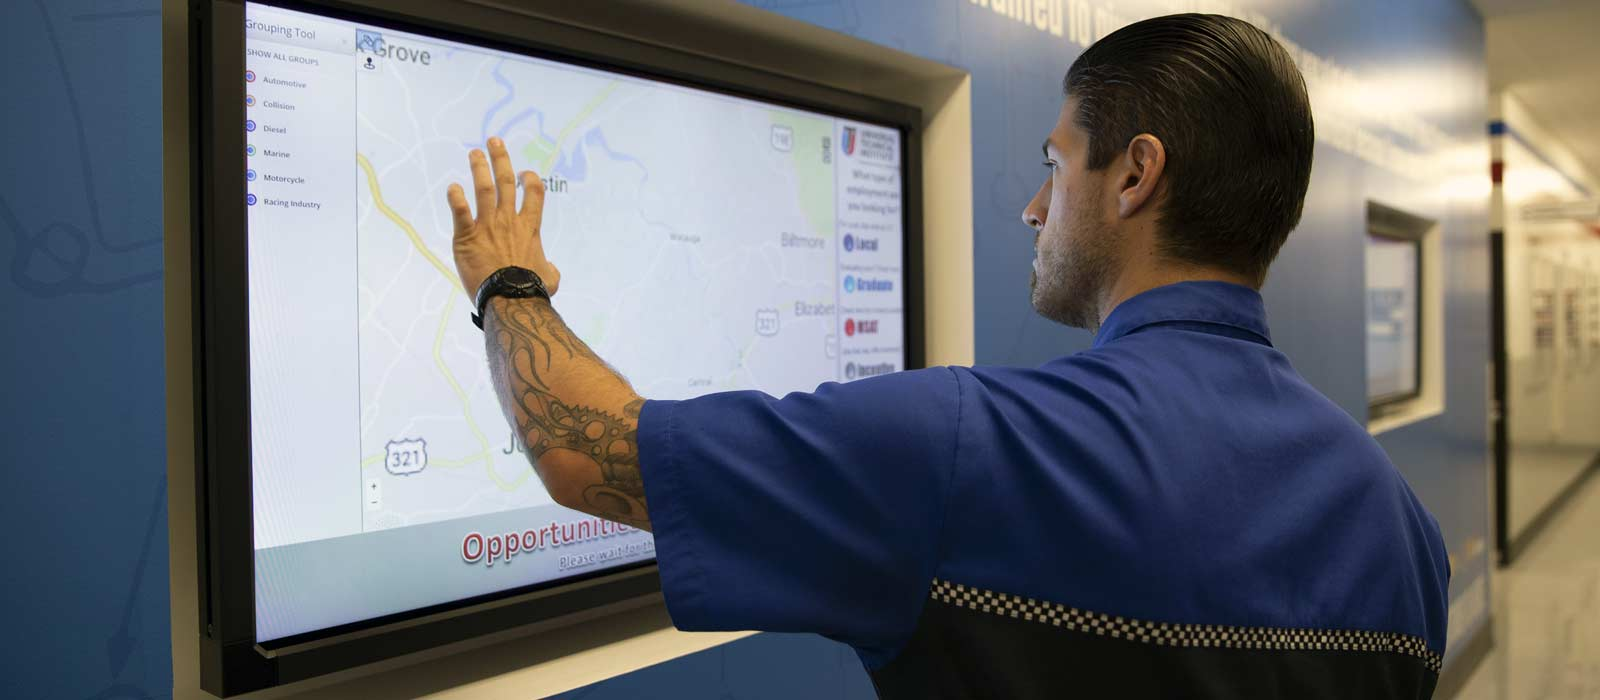 A UTI student with a Diesel Mechanic resume who is looking at job map of the United States